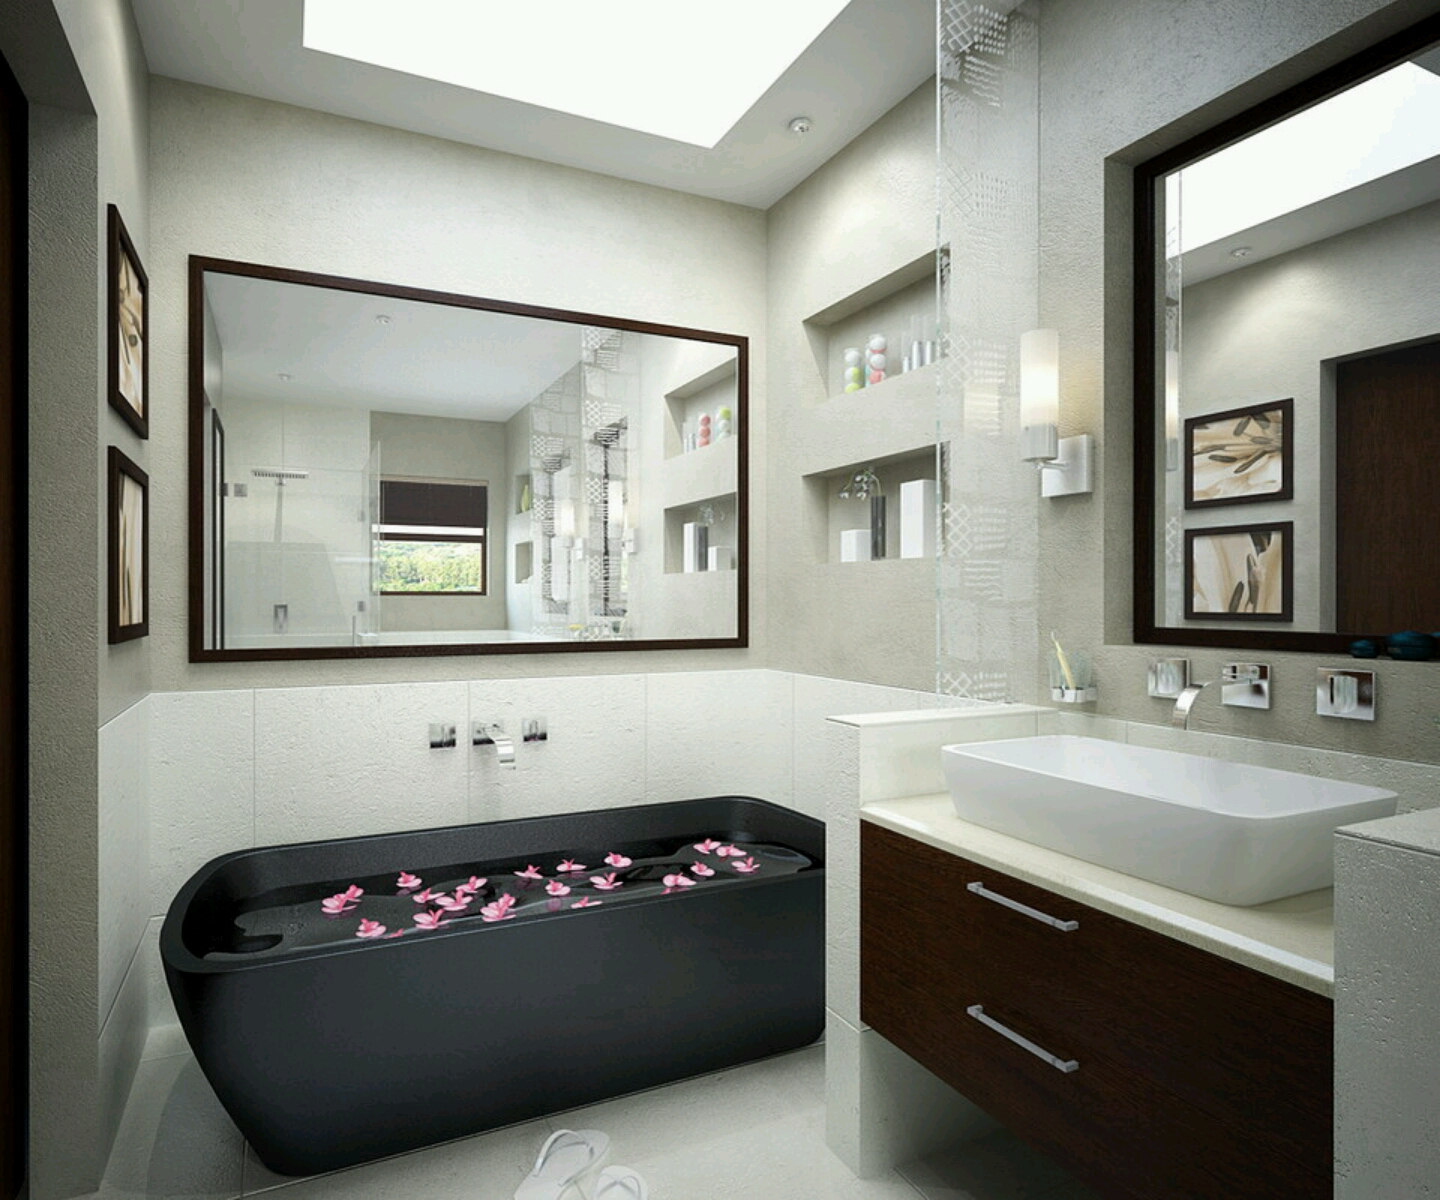 Modern bathrooms cabinets designs furniture gallery for Photos of contemporary bathrooms